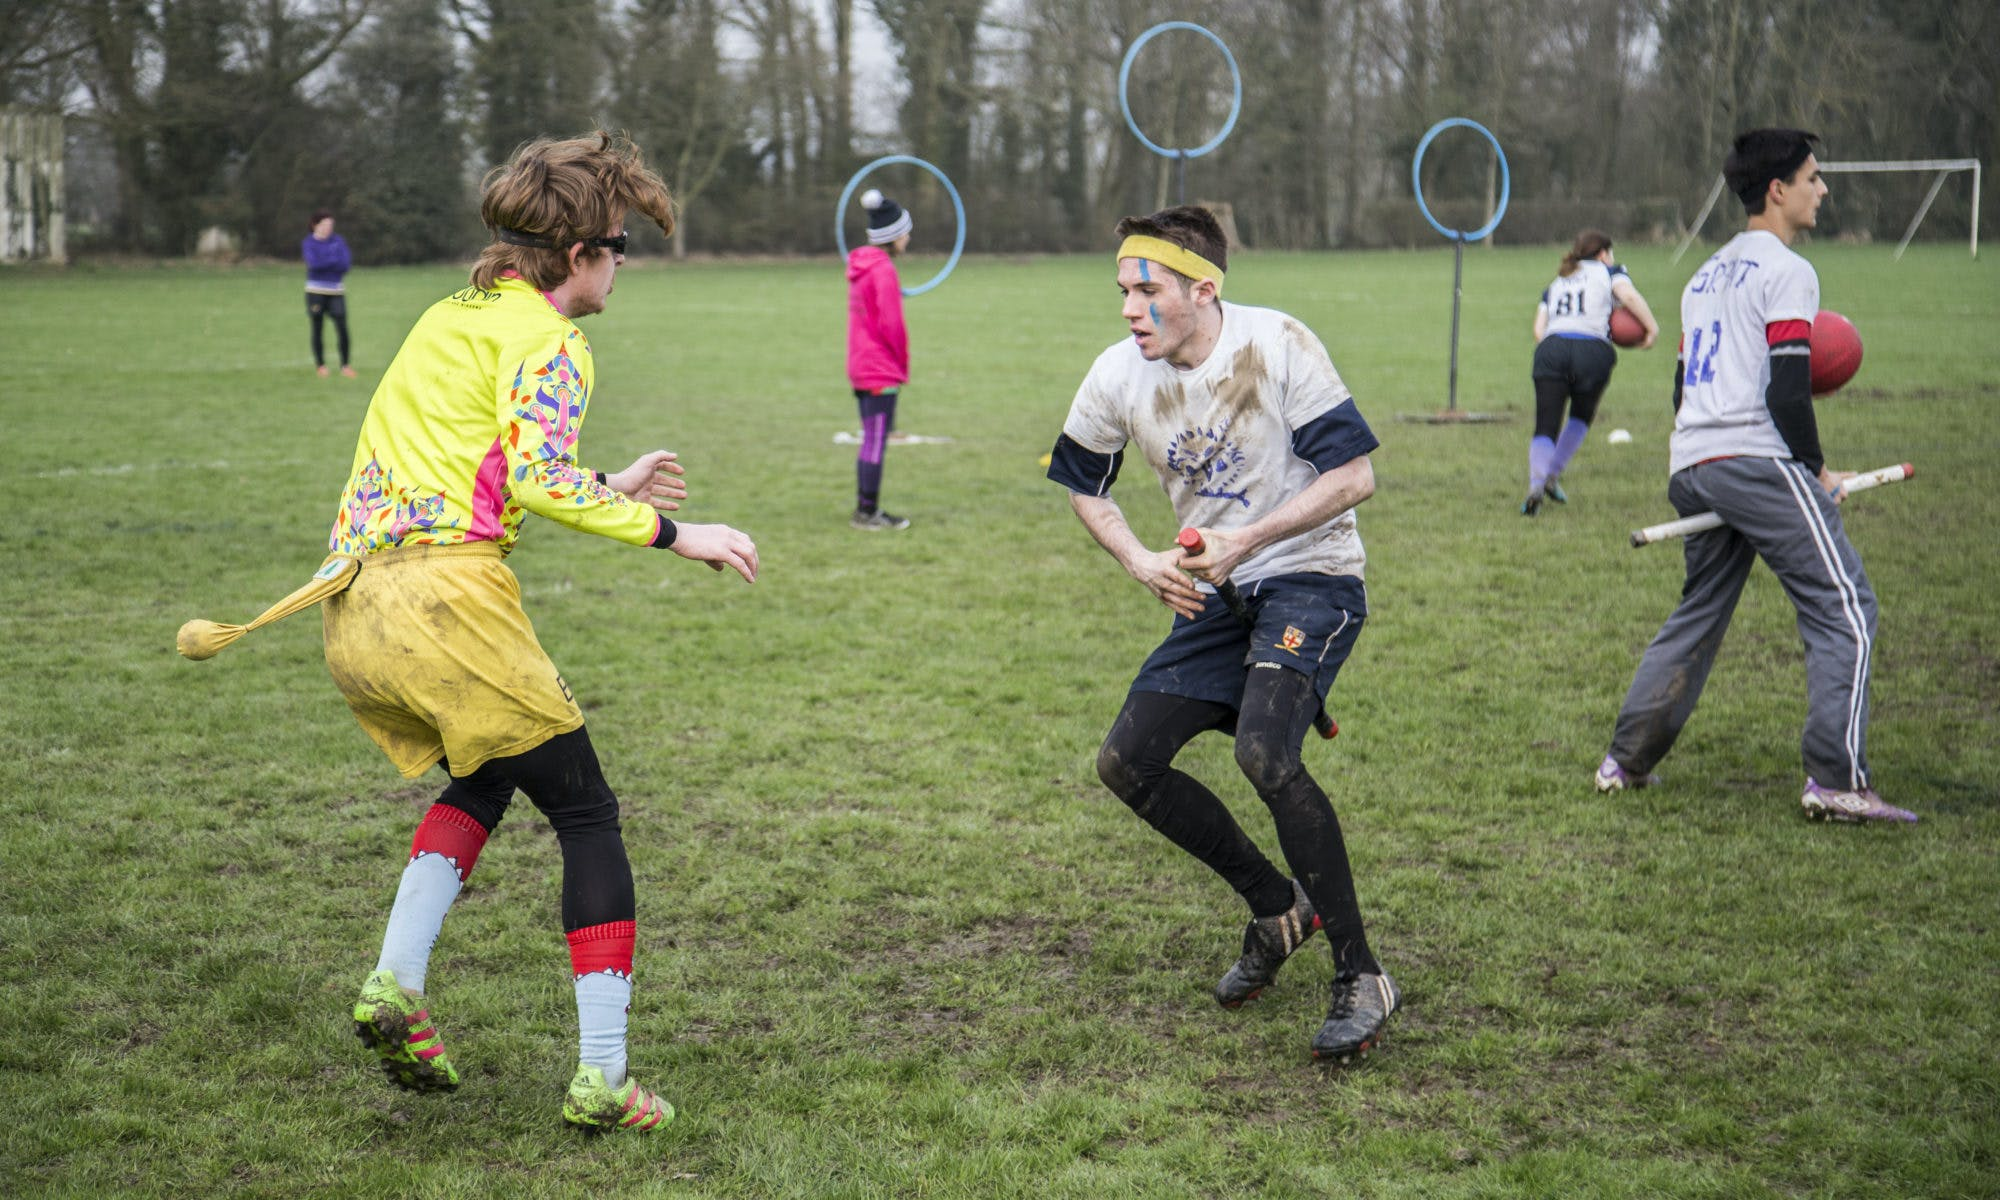 A seeker and snitch jockey for positioning during a match